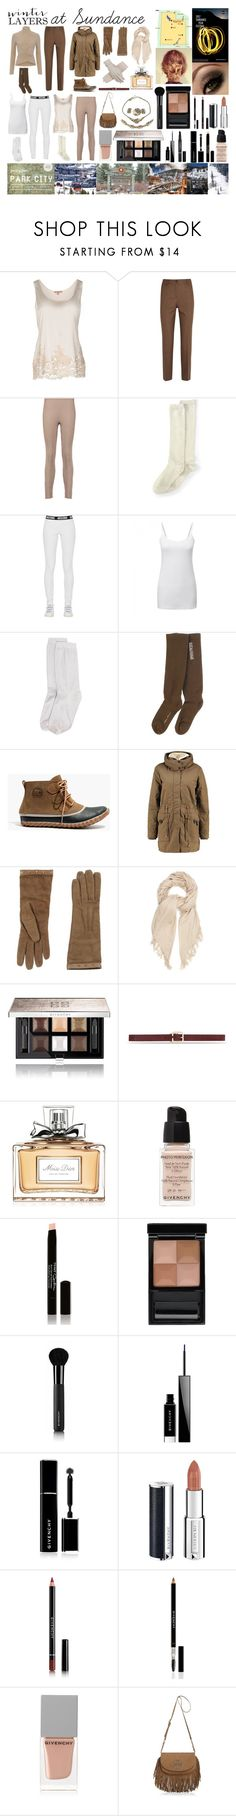 """""""Sundance Film Festival - Park City, Utah"""" by bethnjulia ❤ liked on Polyvore featuring Ermanno Scervino Lingerie, Michael Kors, Magaschoni, Lands' End, Moschino, Stance, Rick Owens, Madewell, Gucci and Isabel Marant"""